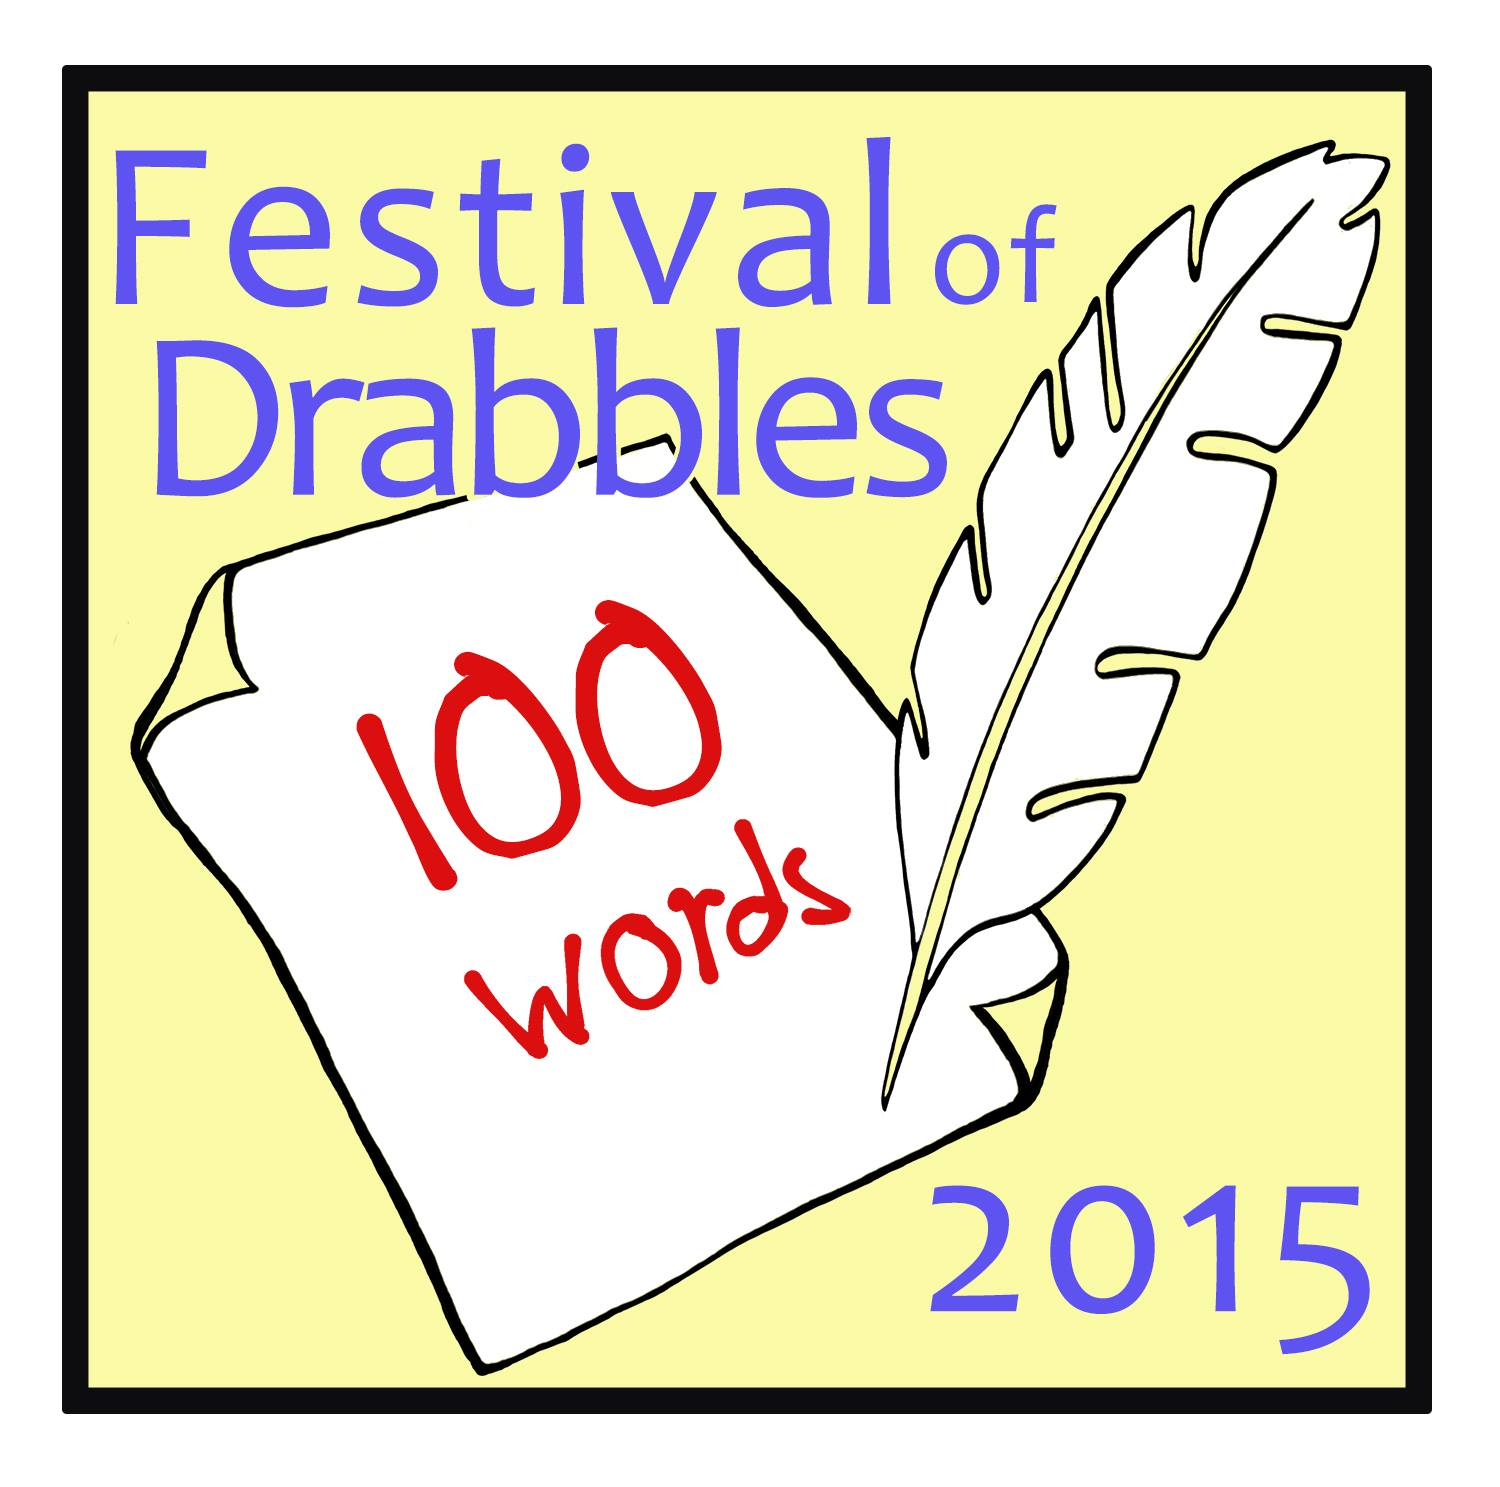 festival of Drabbles